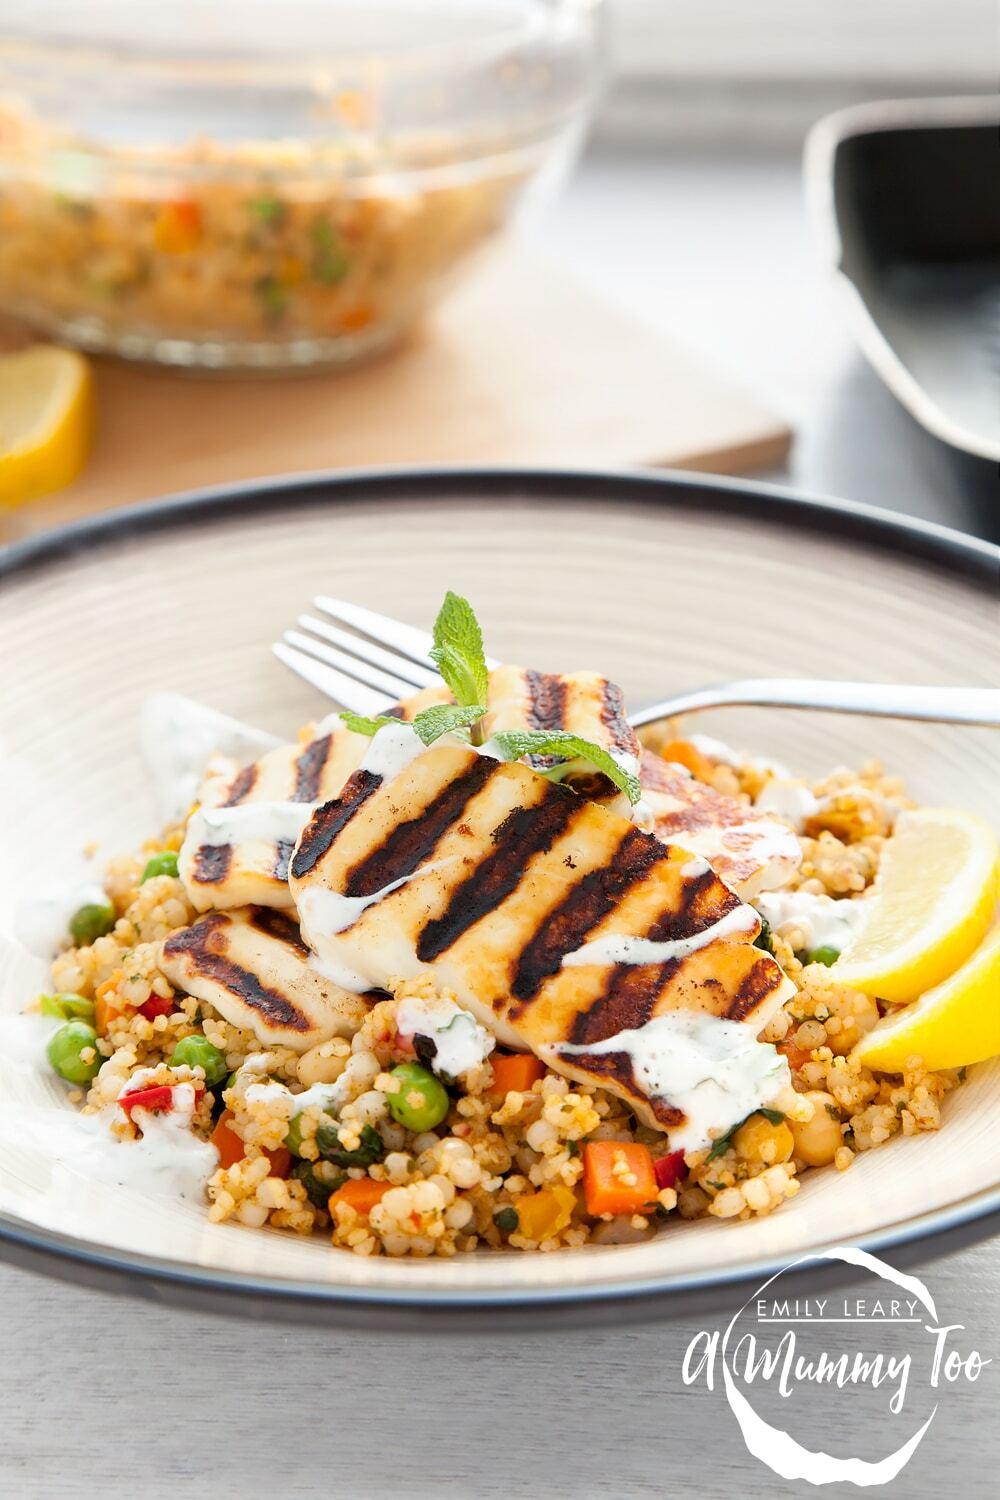 Grilled halloumi vegetable couscous with a yoghurt mint dressing